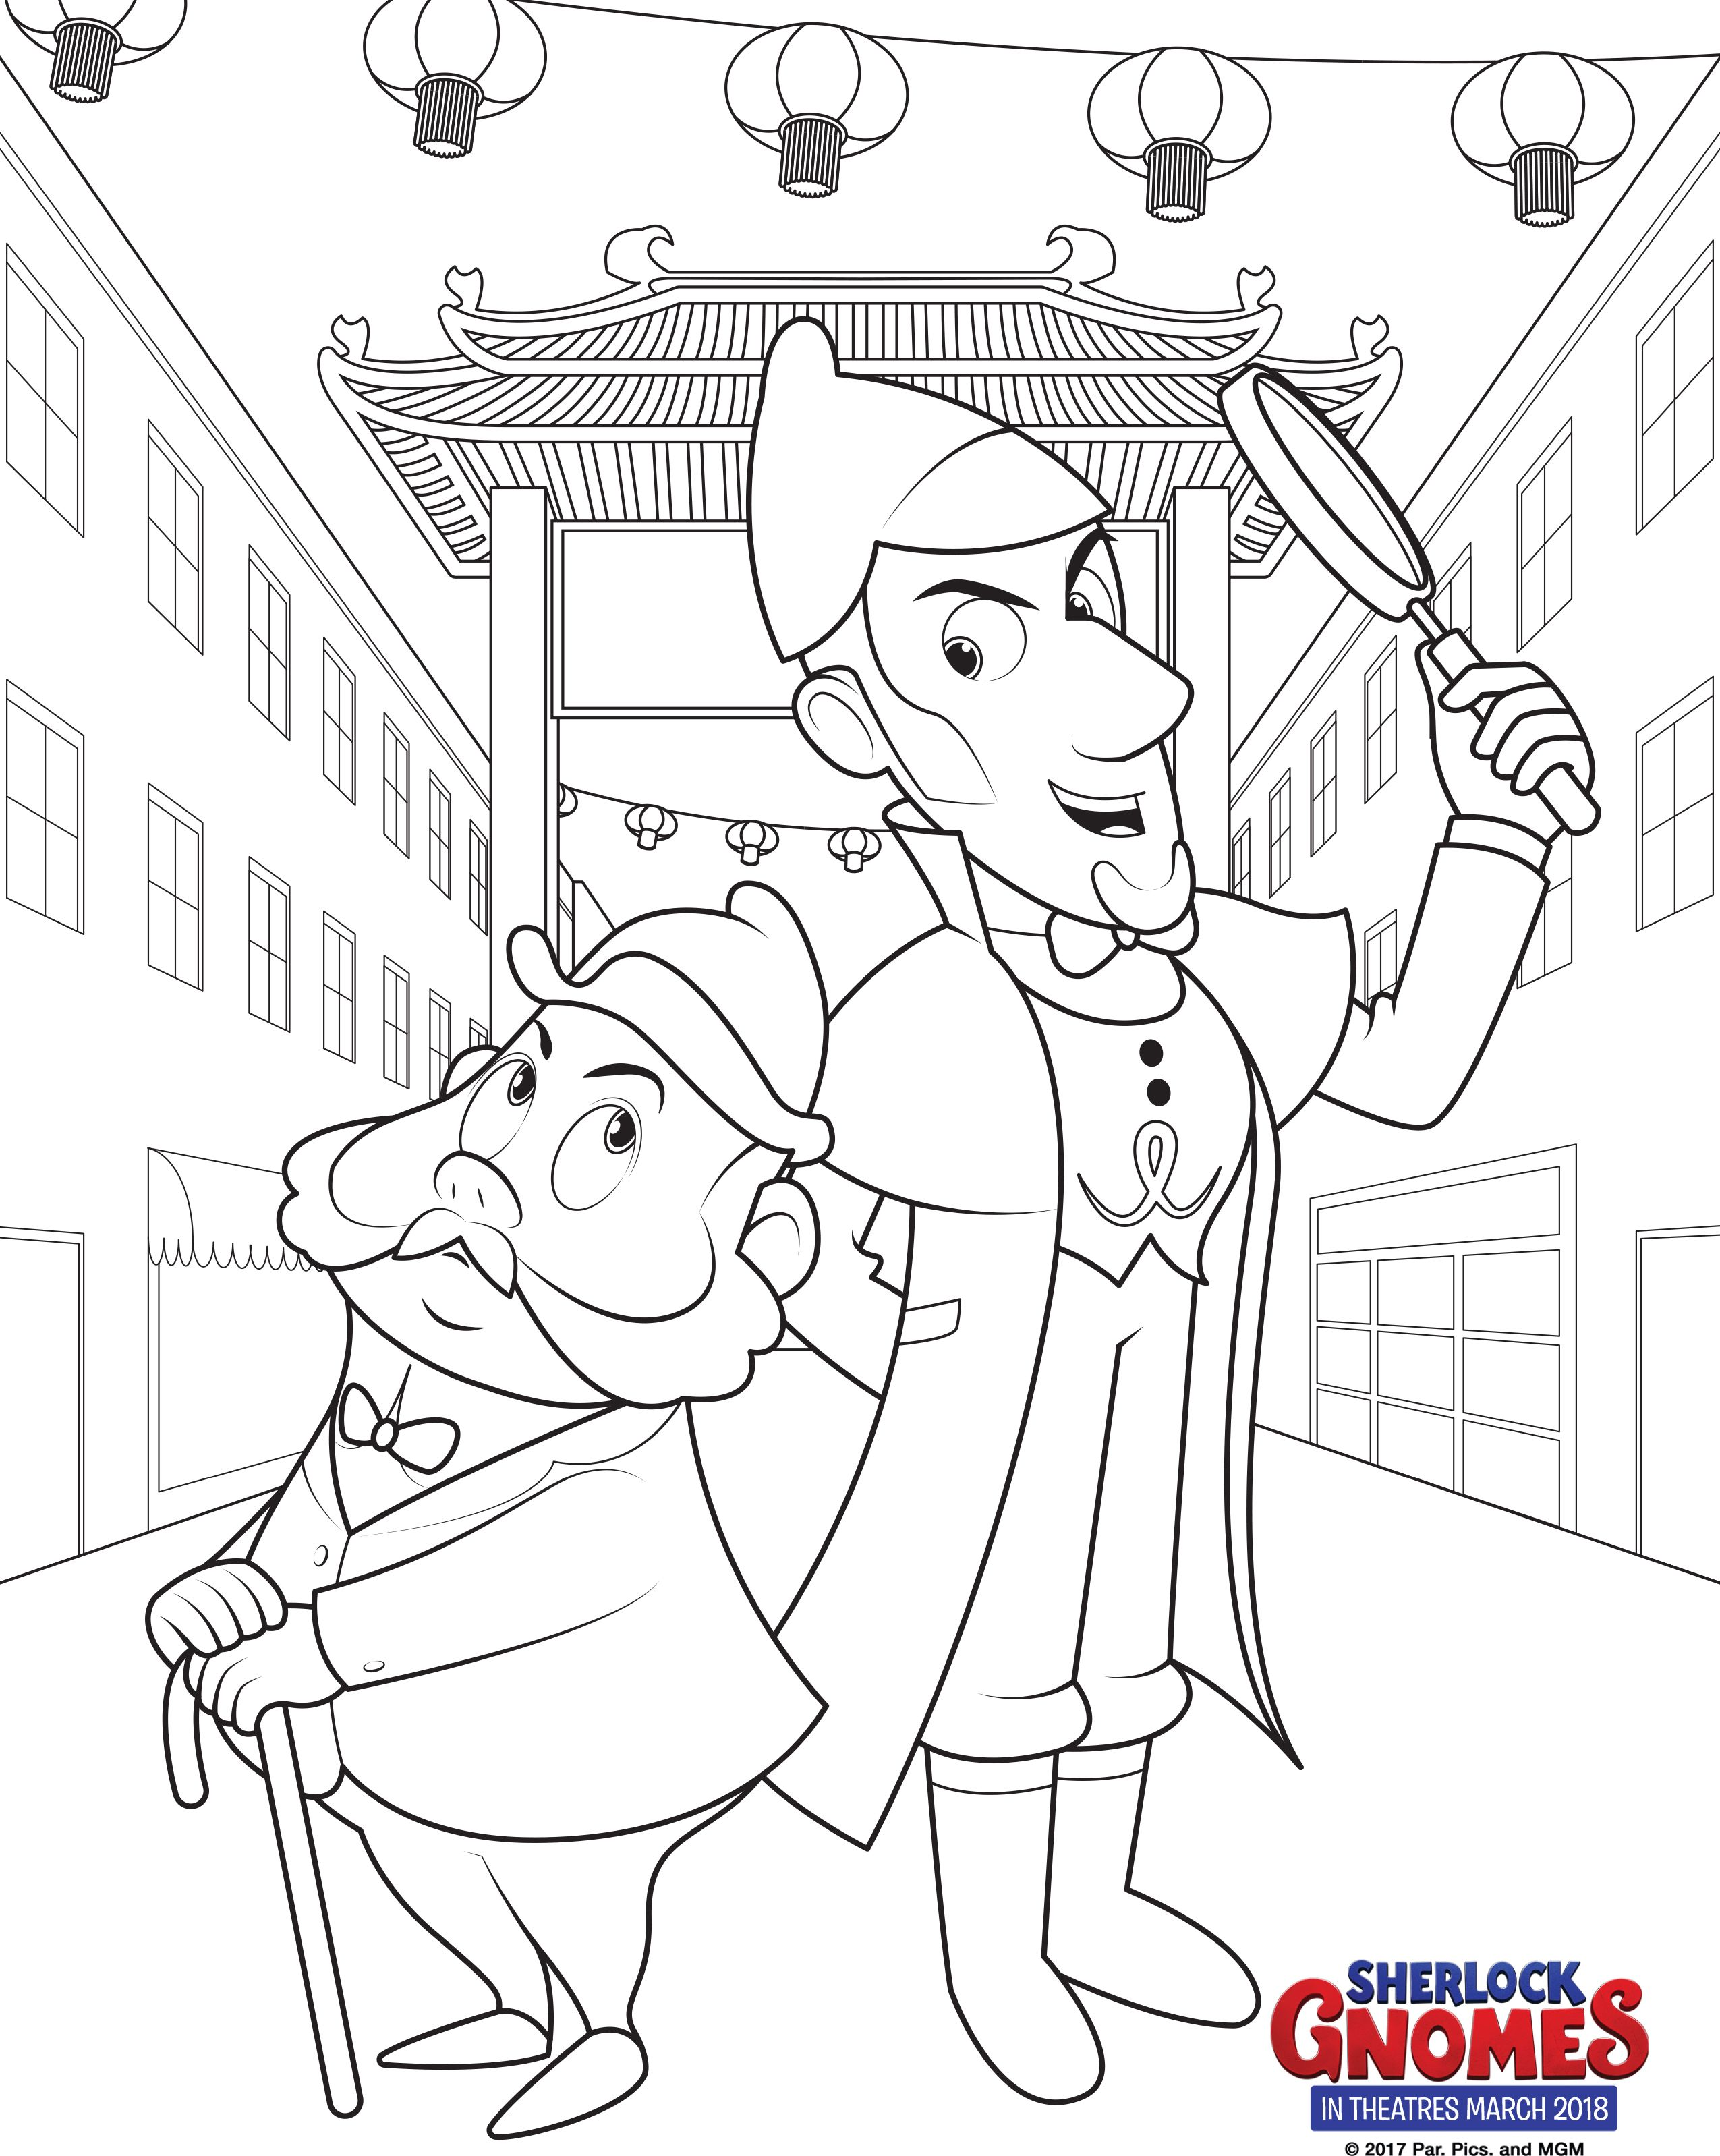 Sherlock Gnomes Coloring Pages Books Cartoon Coloring Pages